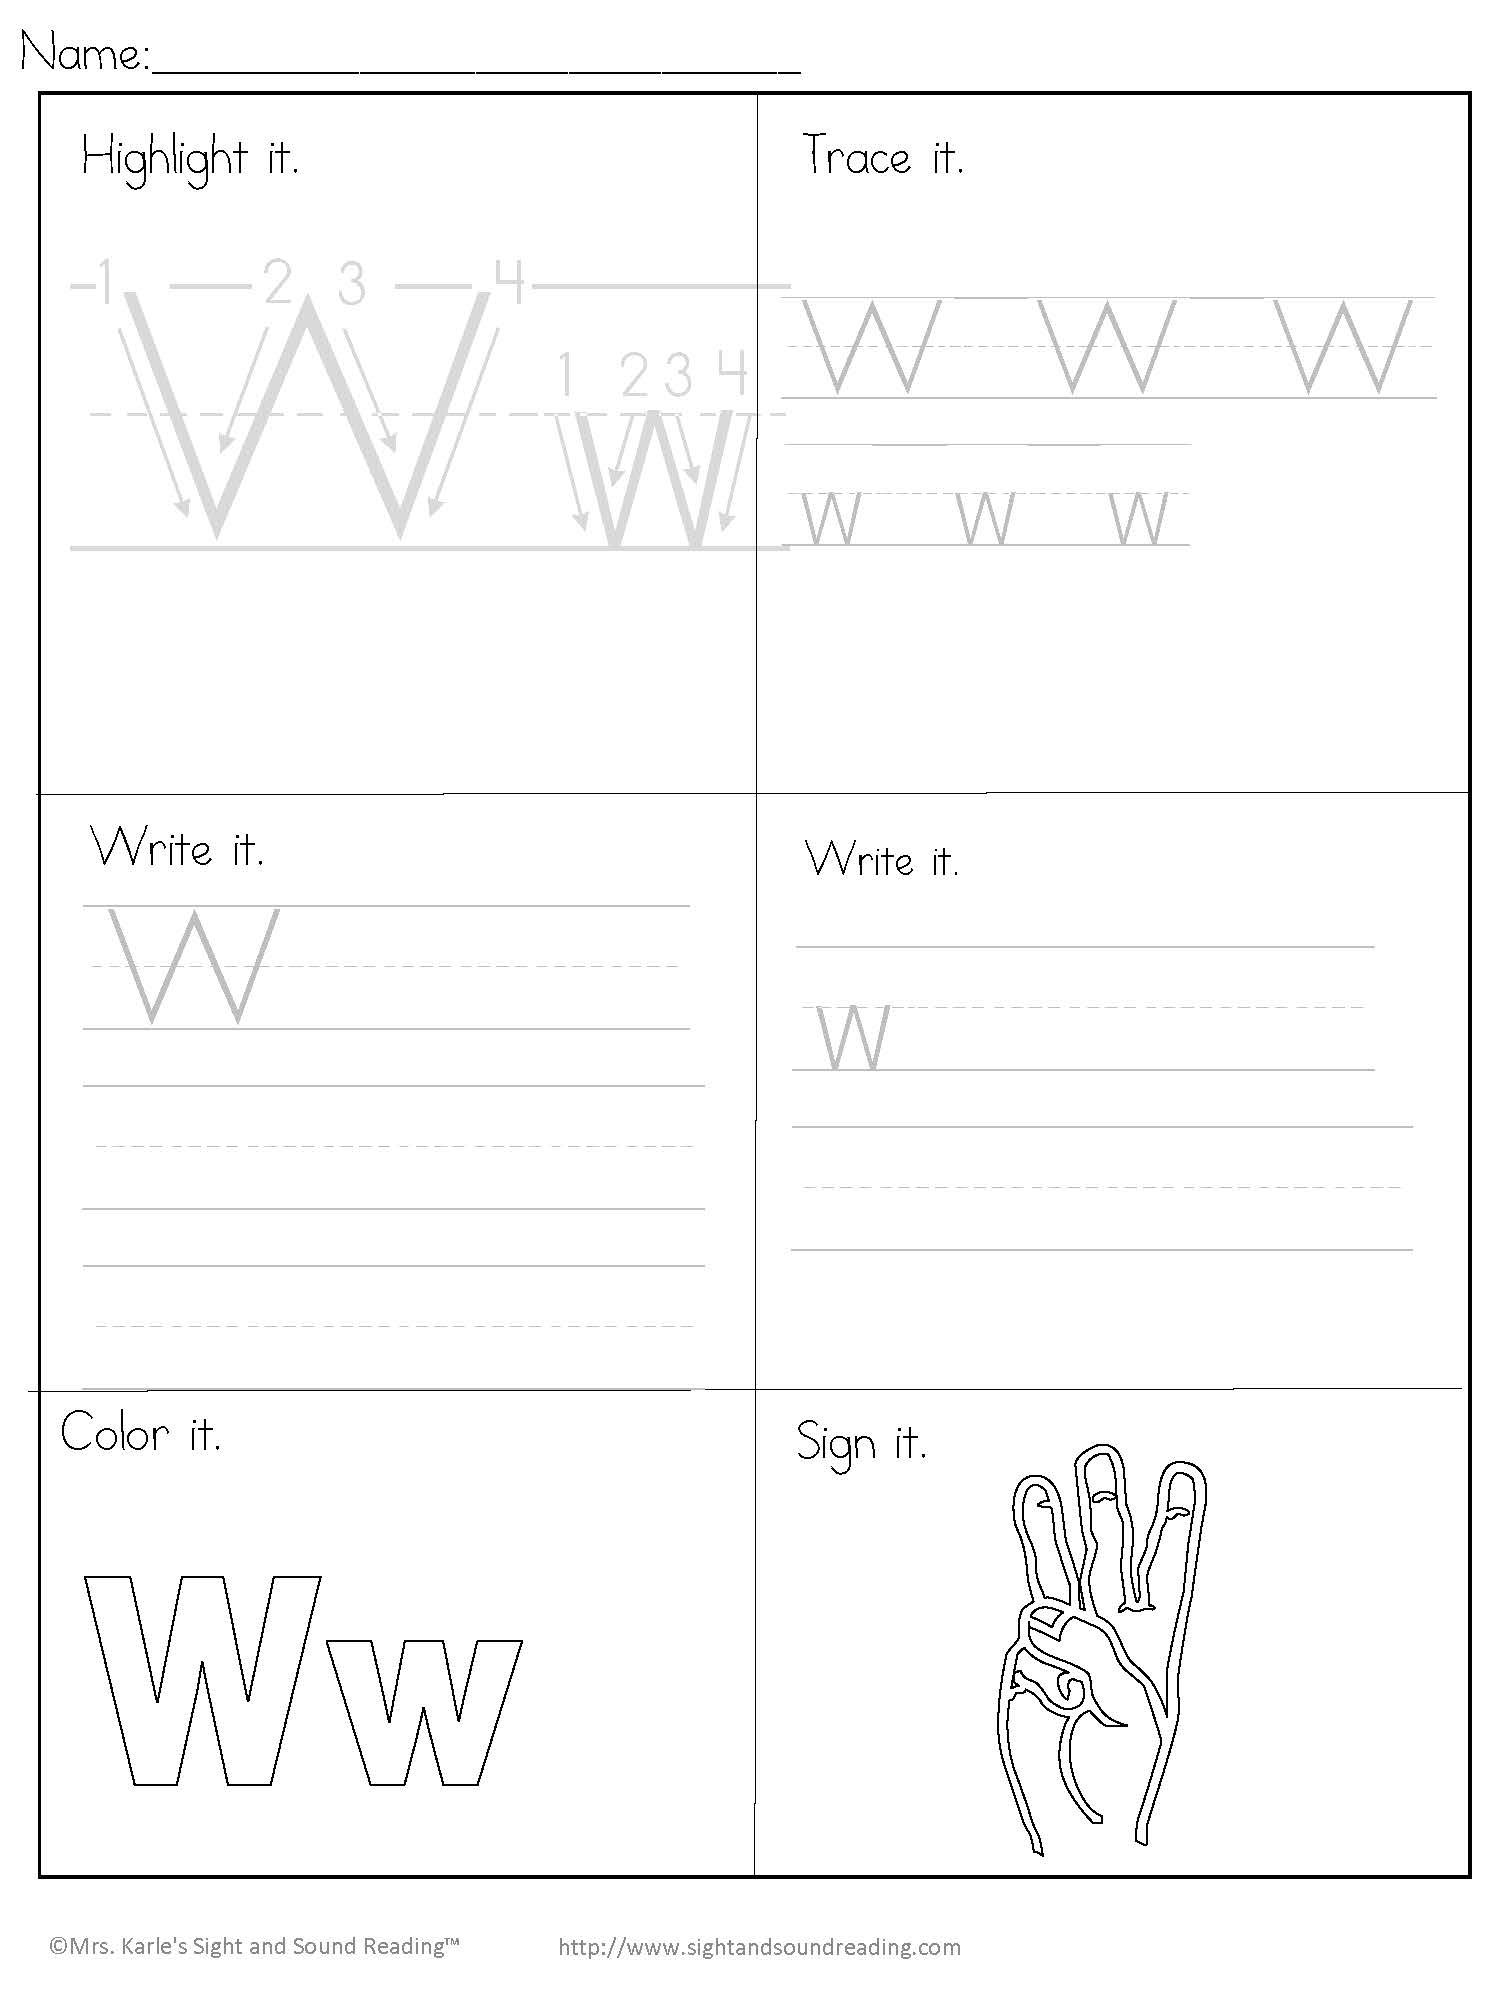 Lowercase Letter N Trace Worksheet For Kindergarten And Preschooler together with Original furthermore Fefc C Acdc B D F E Reading Pa Kindergarten Reading besides Original as well Octopus Crafts Ideas For Kids. on cut and paste worksheets for kindergarten